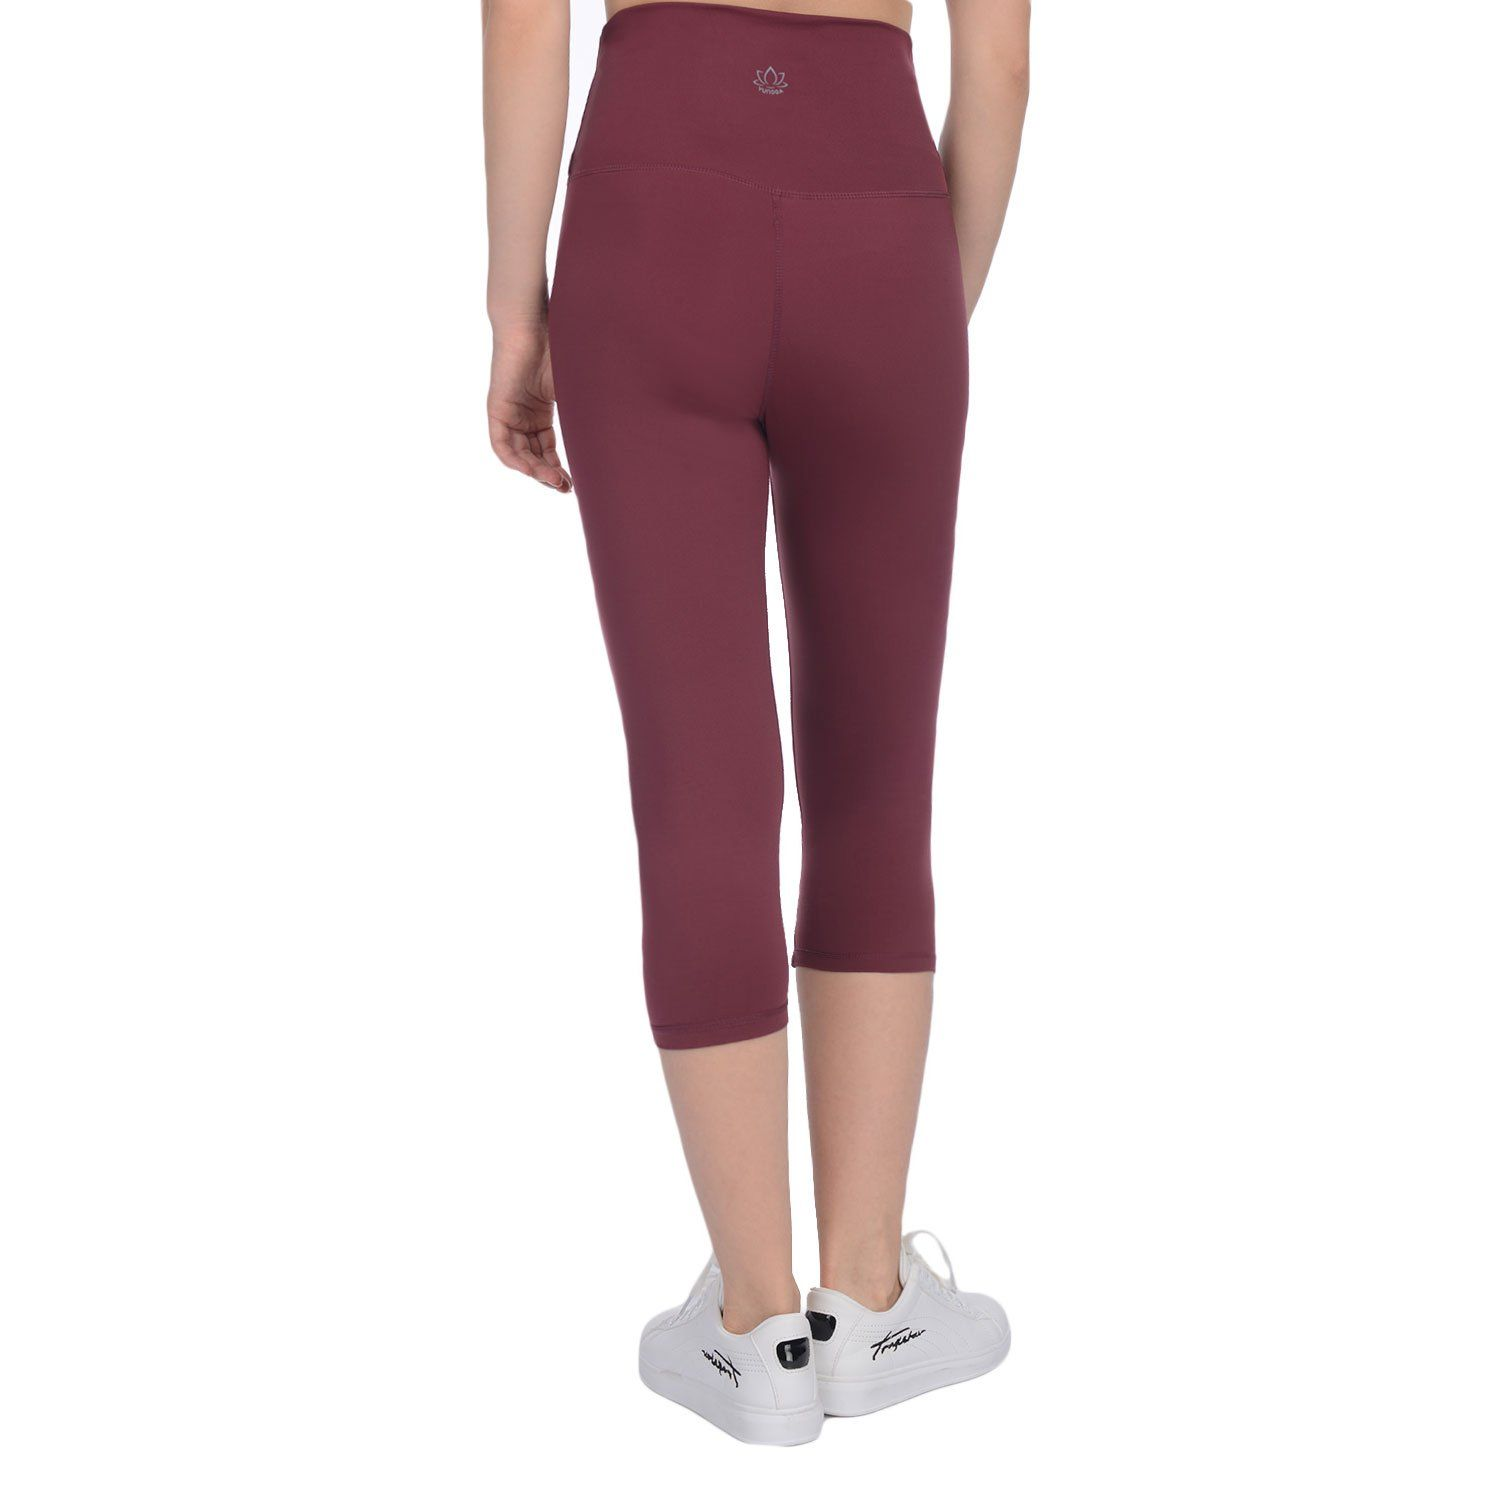 5930236d658 Yunoga Women's Yoga Calf Pants Workout Leggings with High Waist Tummy  Control and Hidden Pockets Red Medium     Check out the image by visiting  the link.